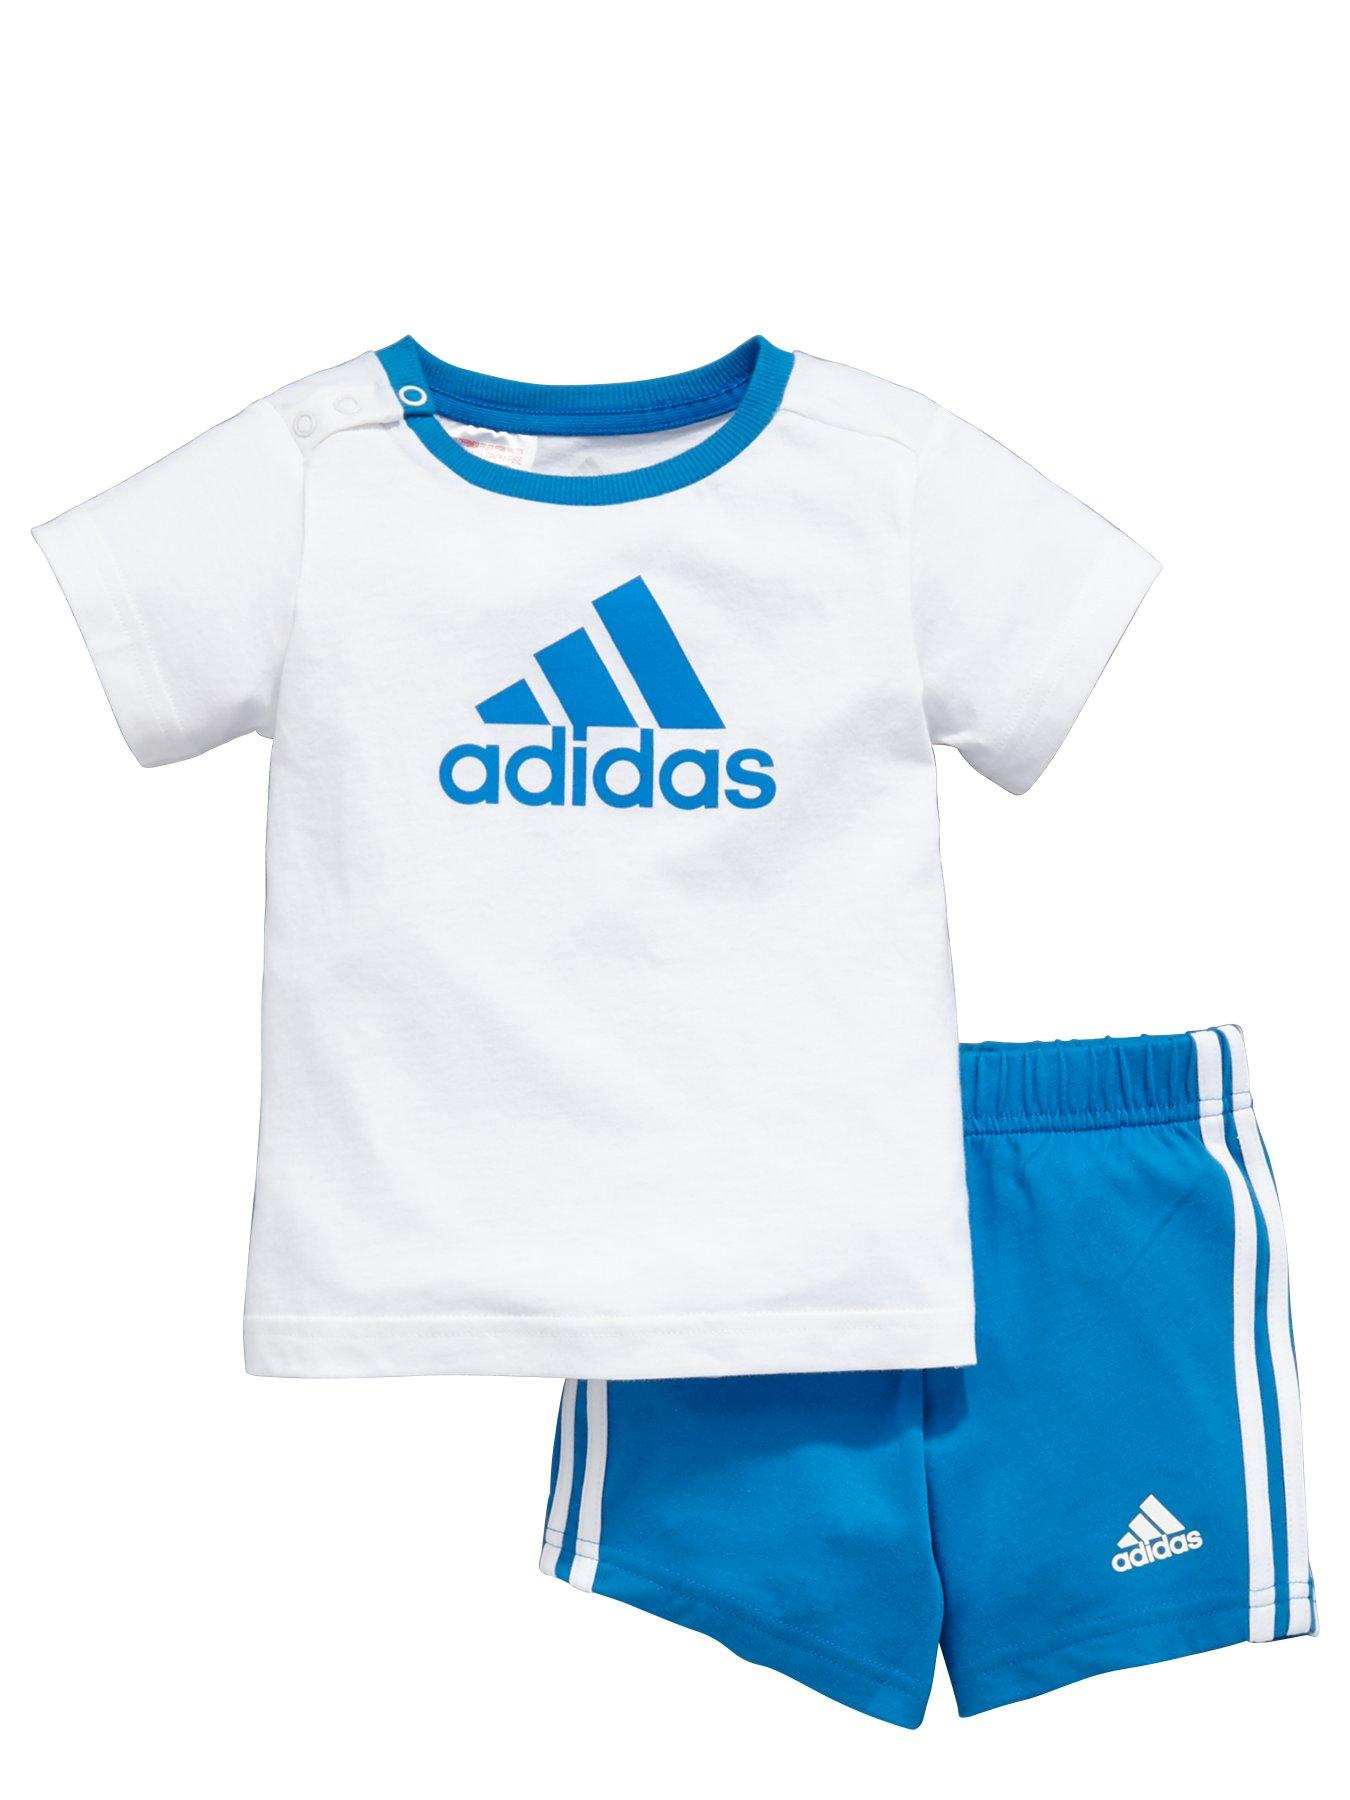 closest adidas store near me